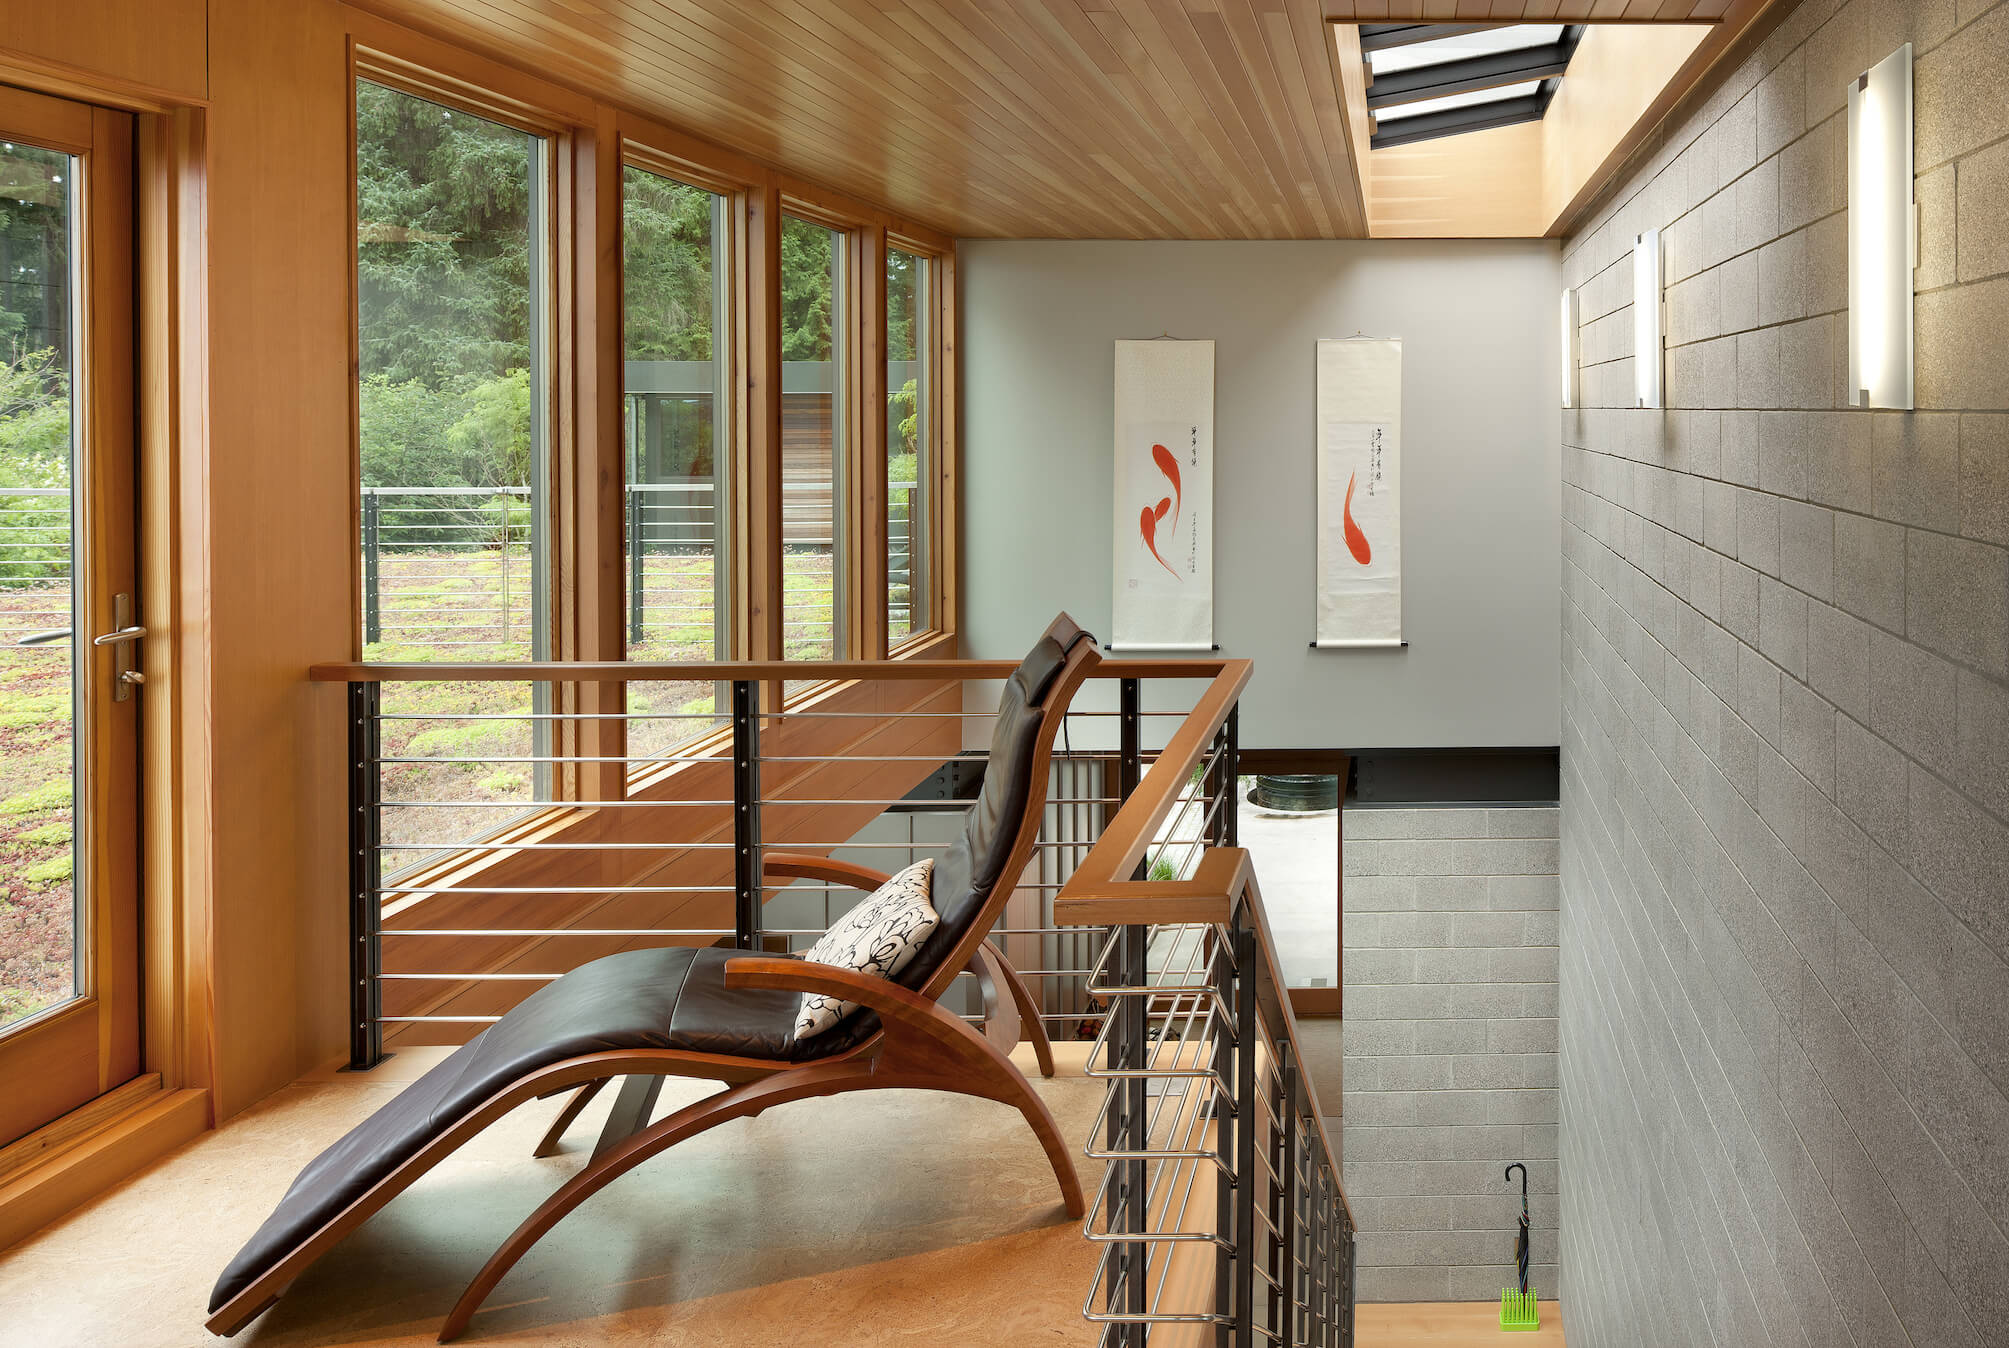 Landing atop staircase featuring wood and metal rail, curved wood and leather chaise lounge and patio door set in natural wood wall with windows all around.